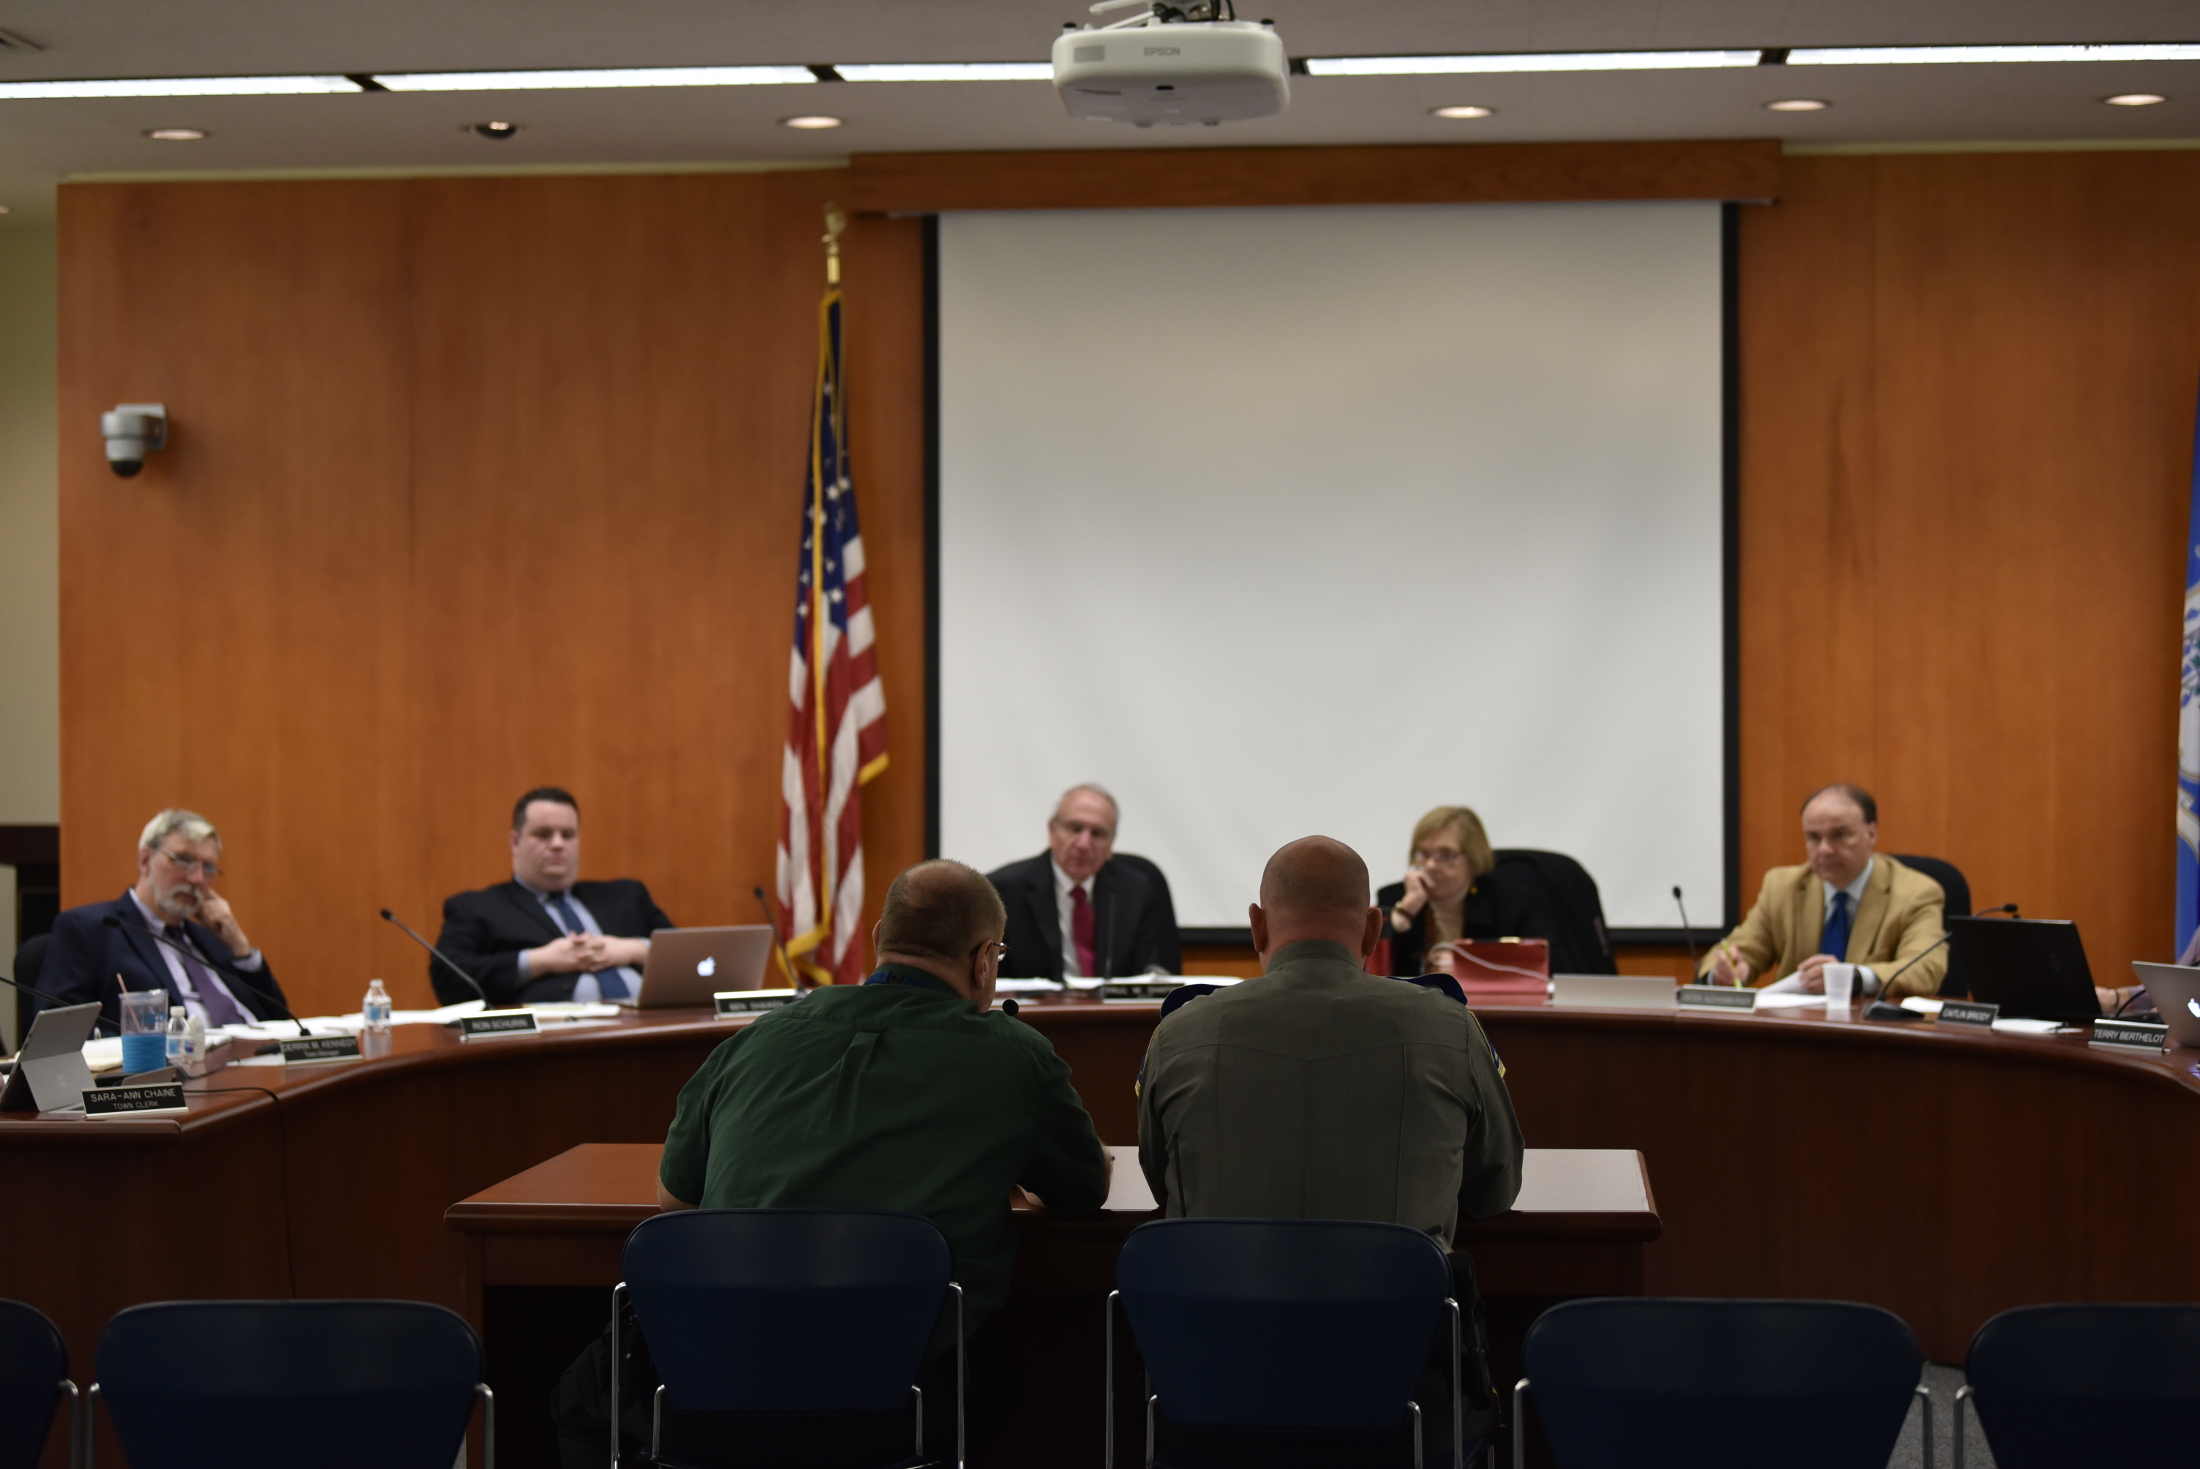 On Monday October 22, Mansfield town council meeting was held in Audrey P. Beck Municipal Building. Town Councils met and discussed varies of old, new business and petitions (Eric Yang/The Daily Campus)